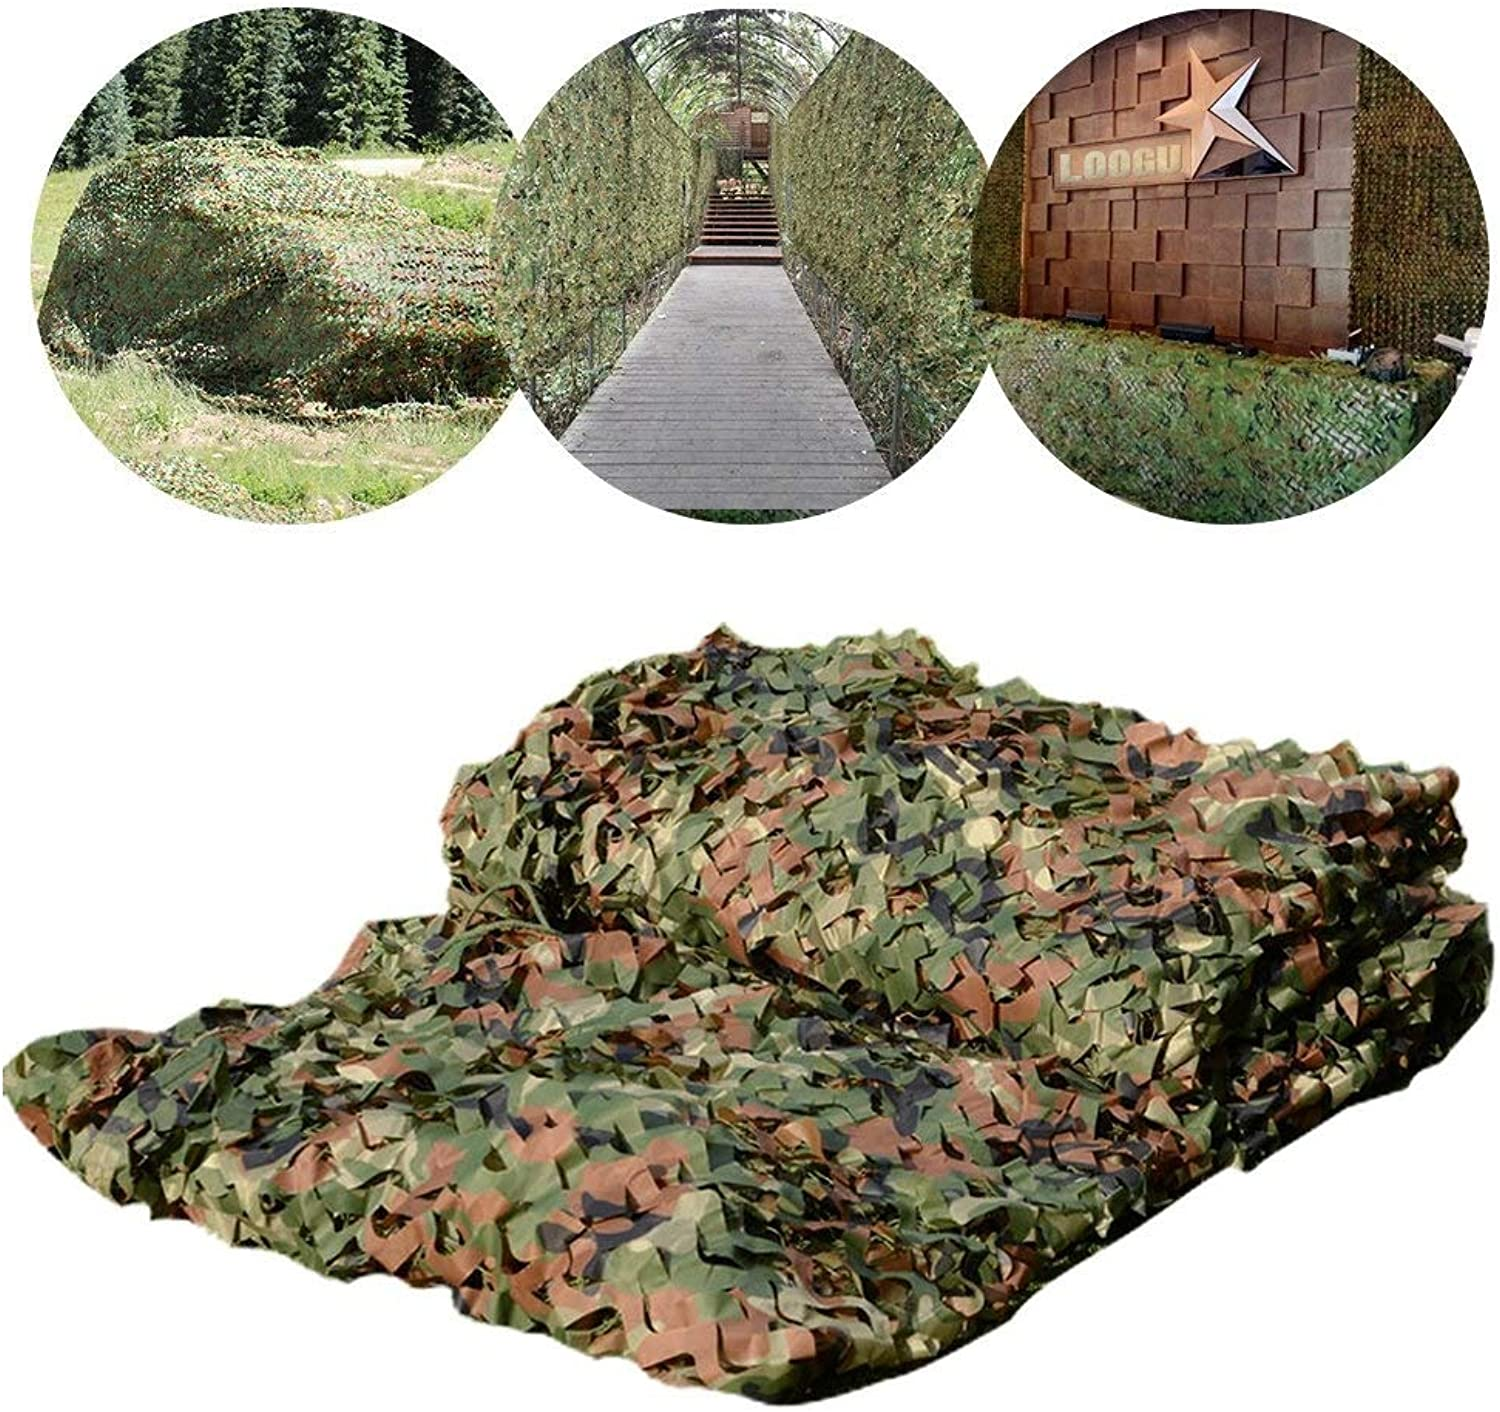 Camouflage Net Shade Net Decoration Camping Sunshade Oxford Cloth Camping Tent Suitable For Outdoor Camping Hidden Hunting Photography Shade Halloween Christmas Decoration ( Size   33M(9.89.8ft) )